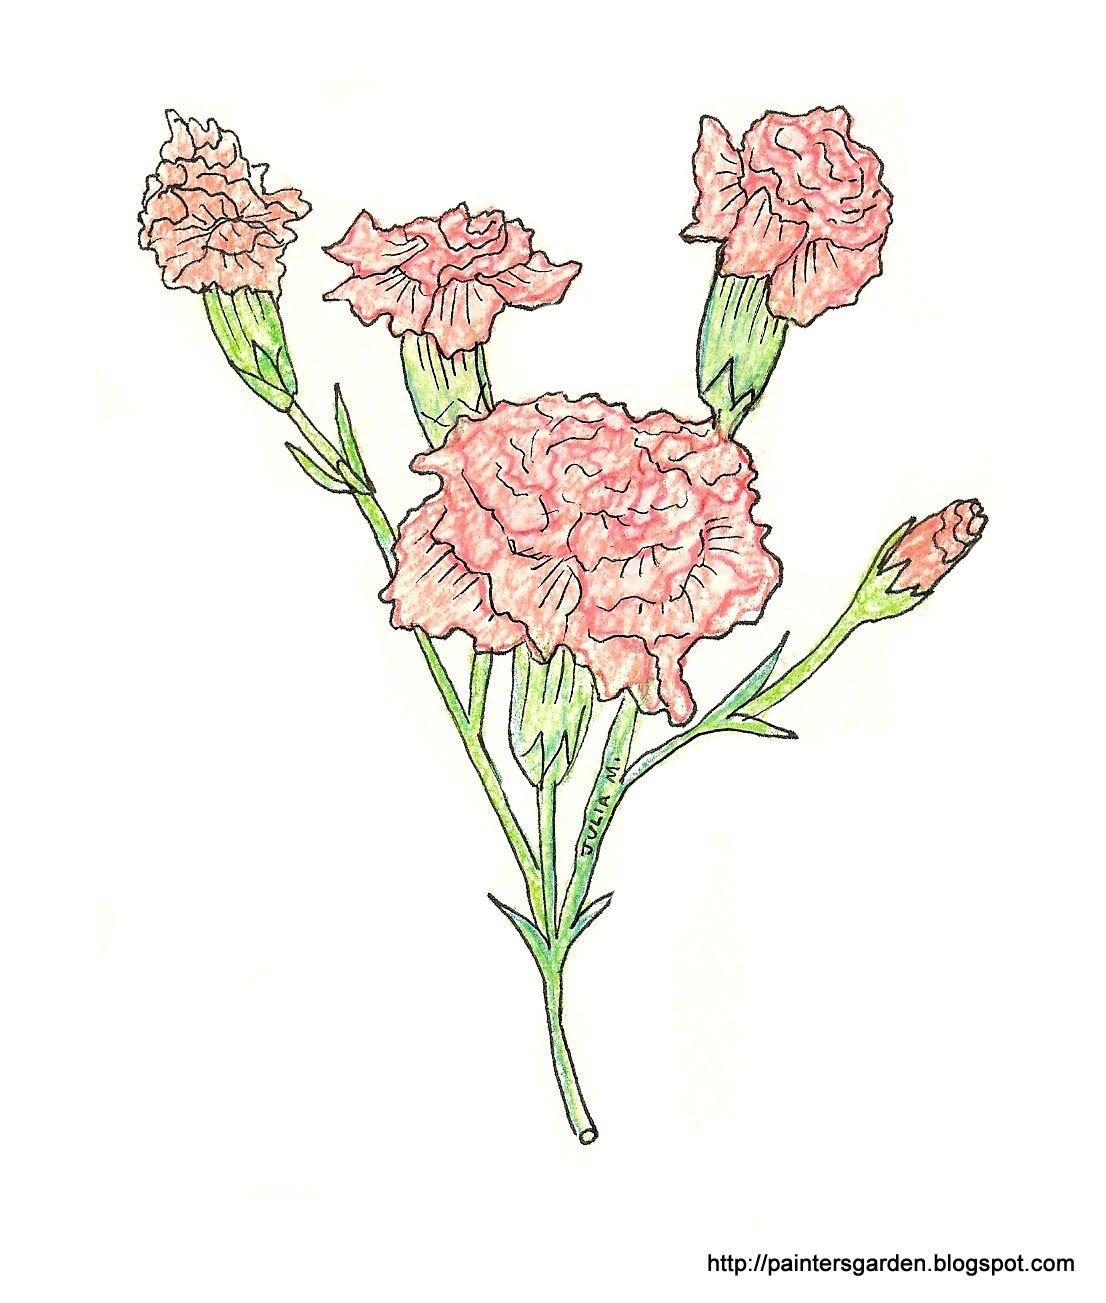 Paintersgarden Carnation Drawing Colored Pencil And Ink Carnation Drawing Drawings Colored Pencils